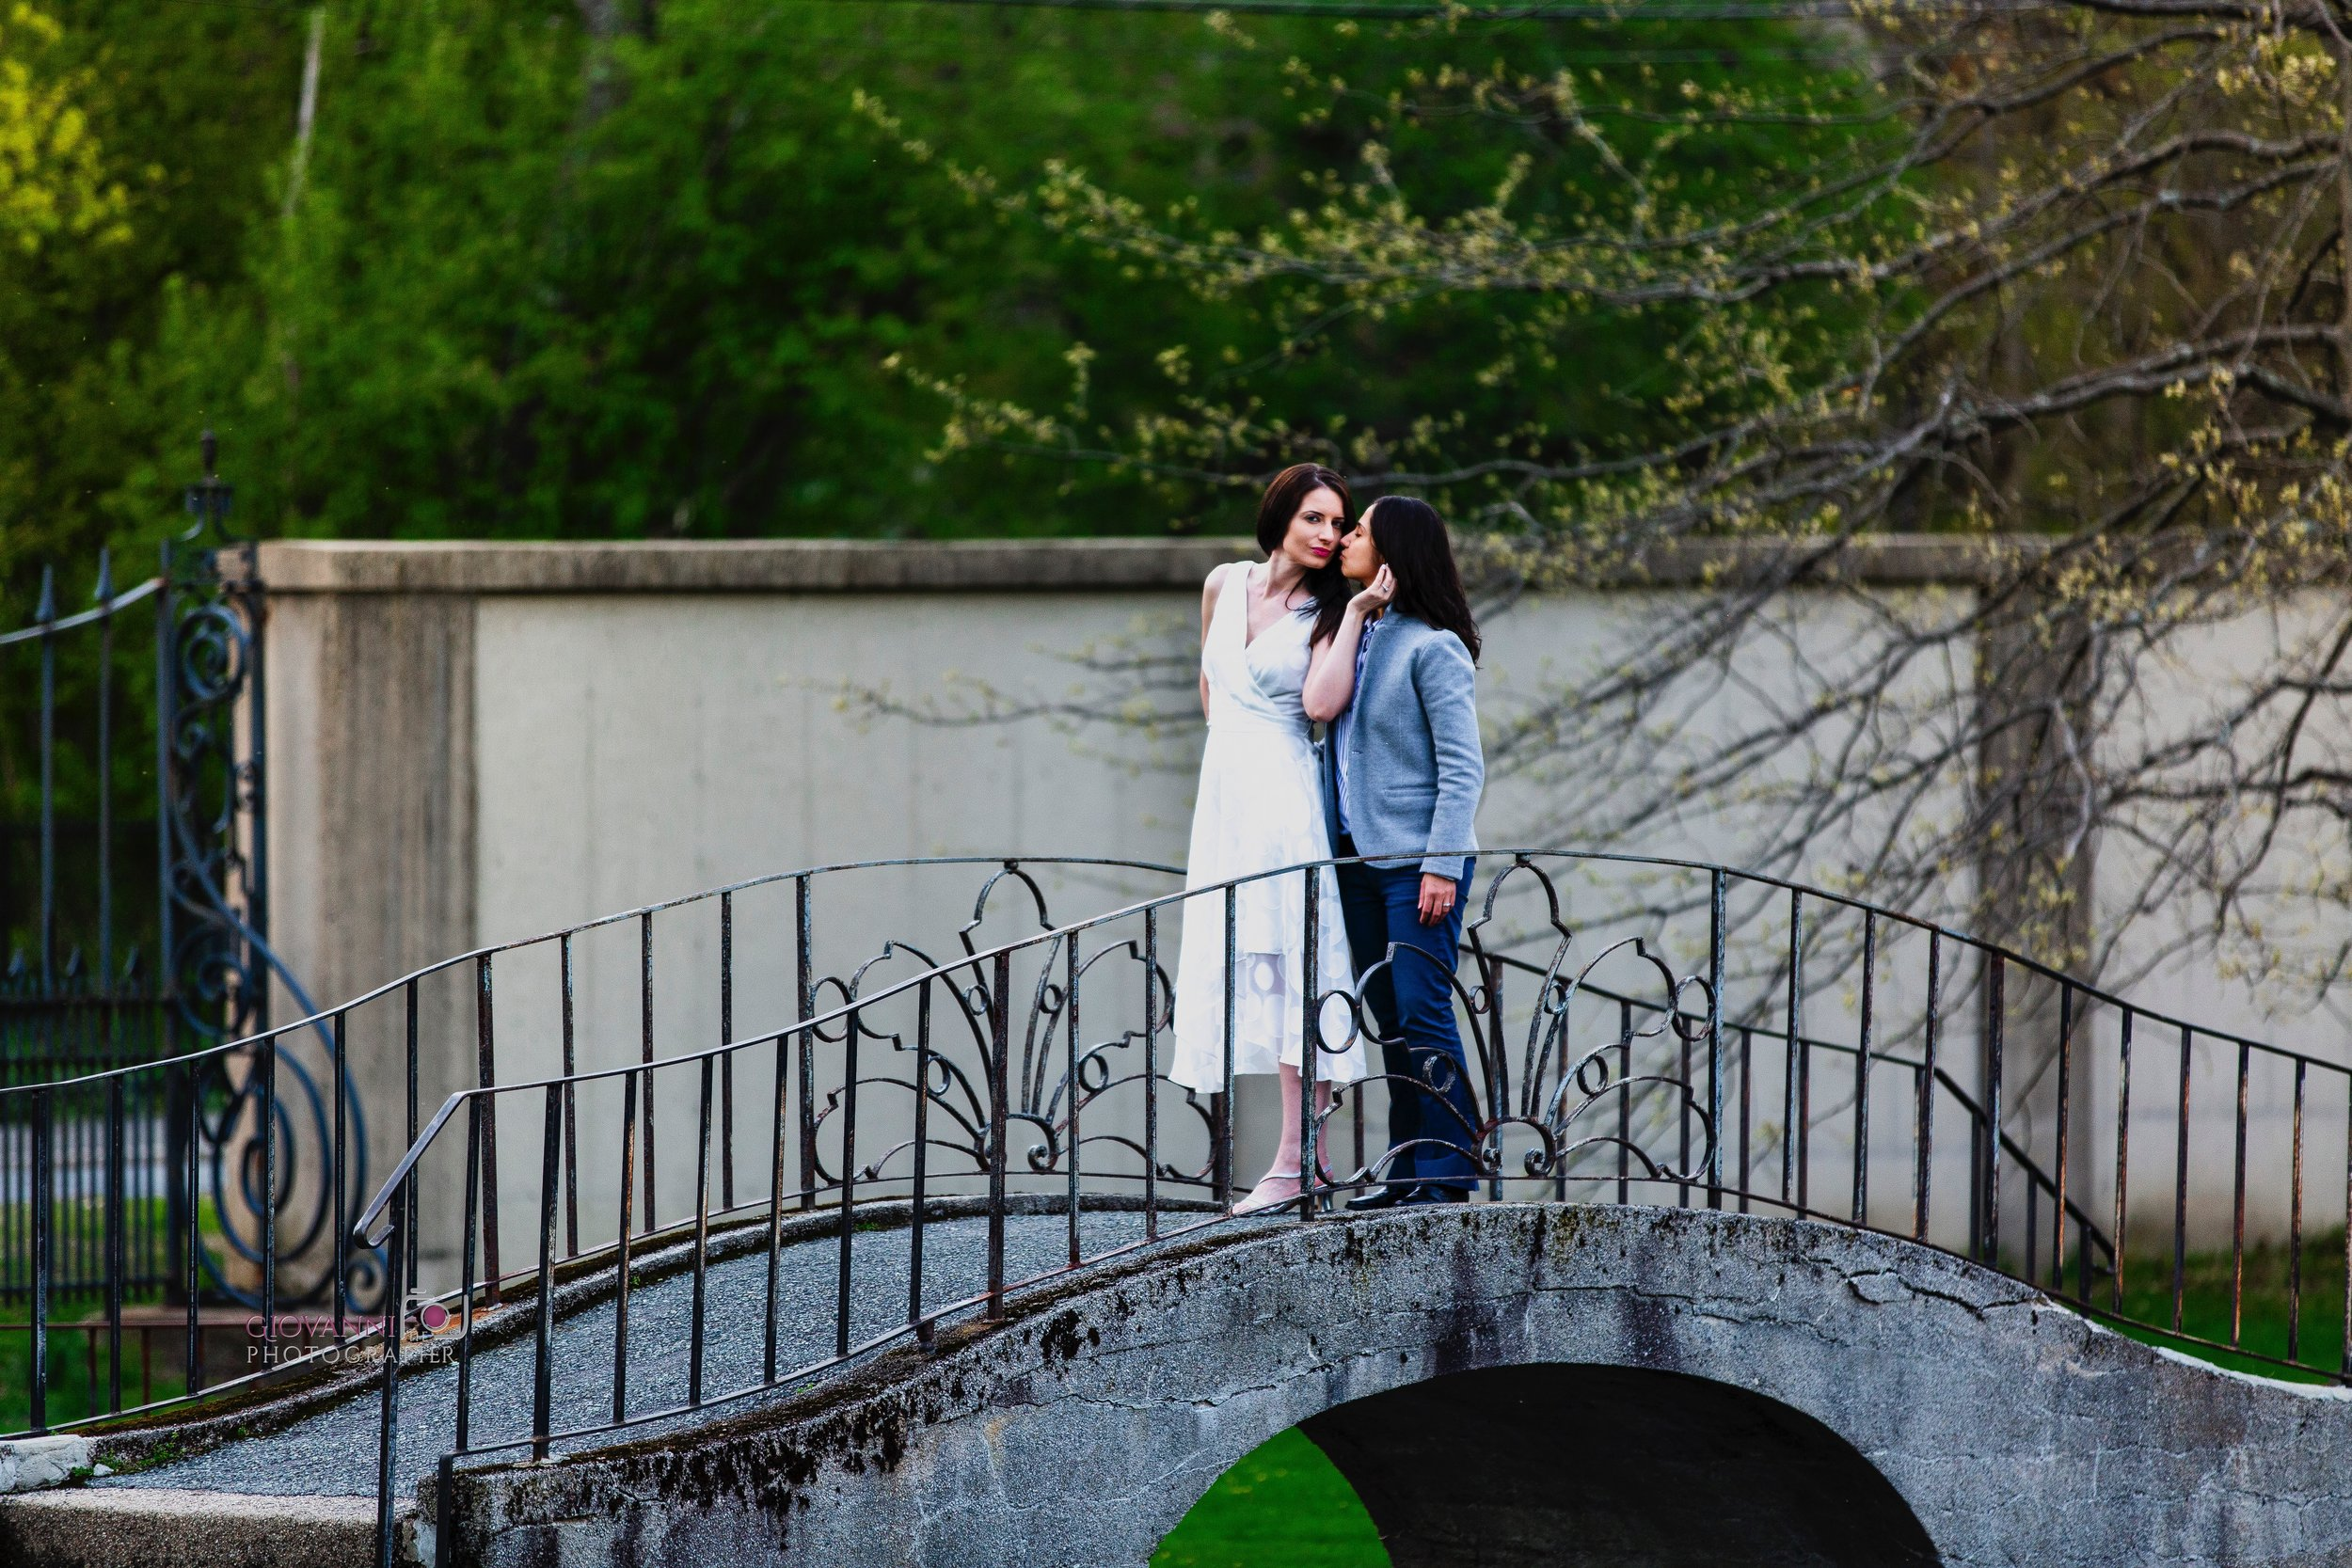 314A1487+Giovanni The Photographer+Best Boston Engagement Photography+Lars Anderson Park WM100.jpg